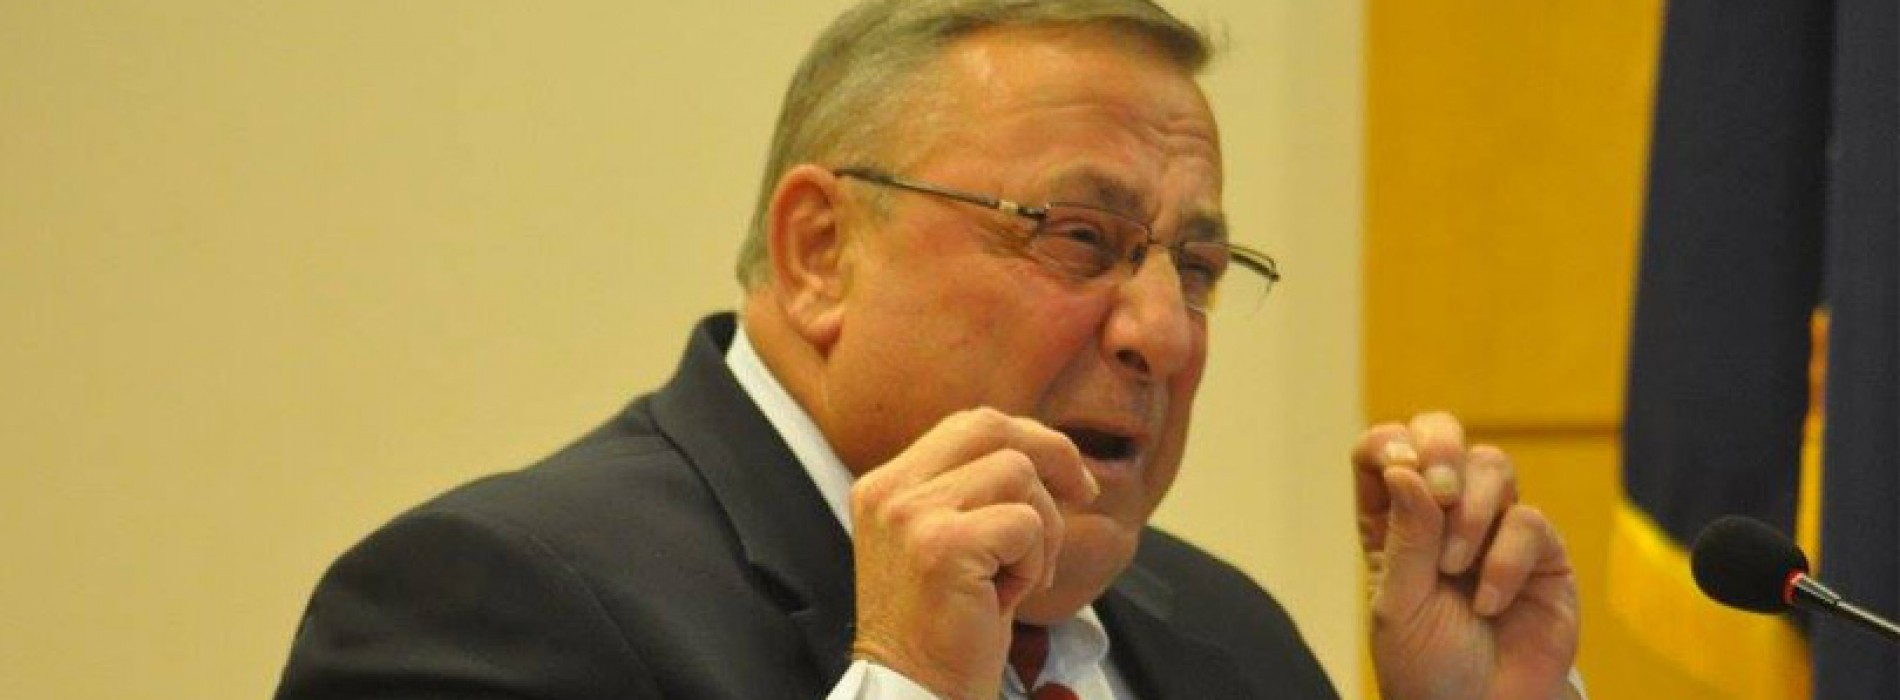 Democrats stand strong on taxes and education, while Gov. LePage retreats from everything